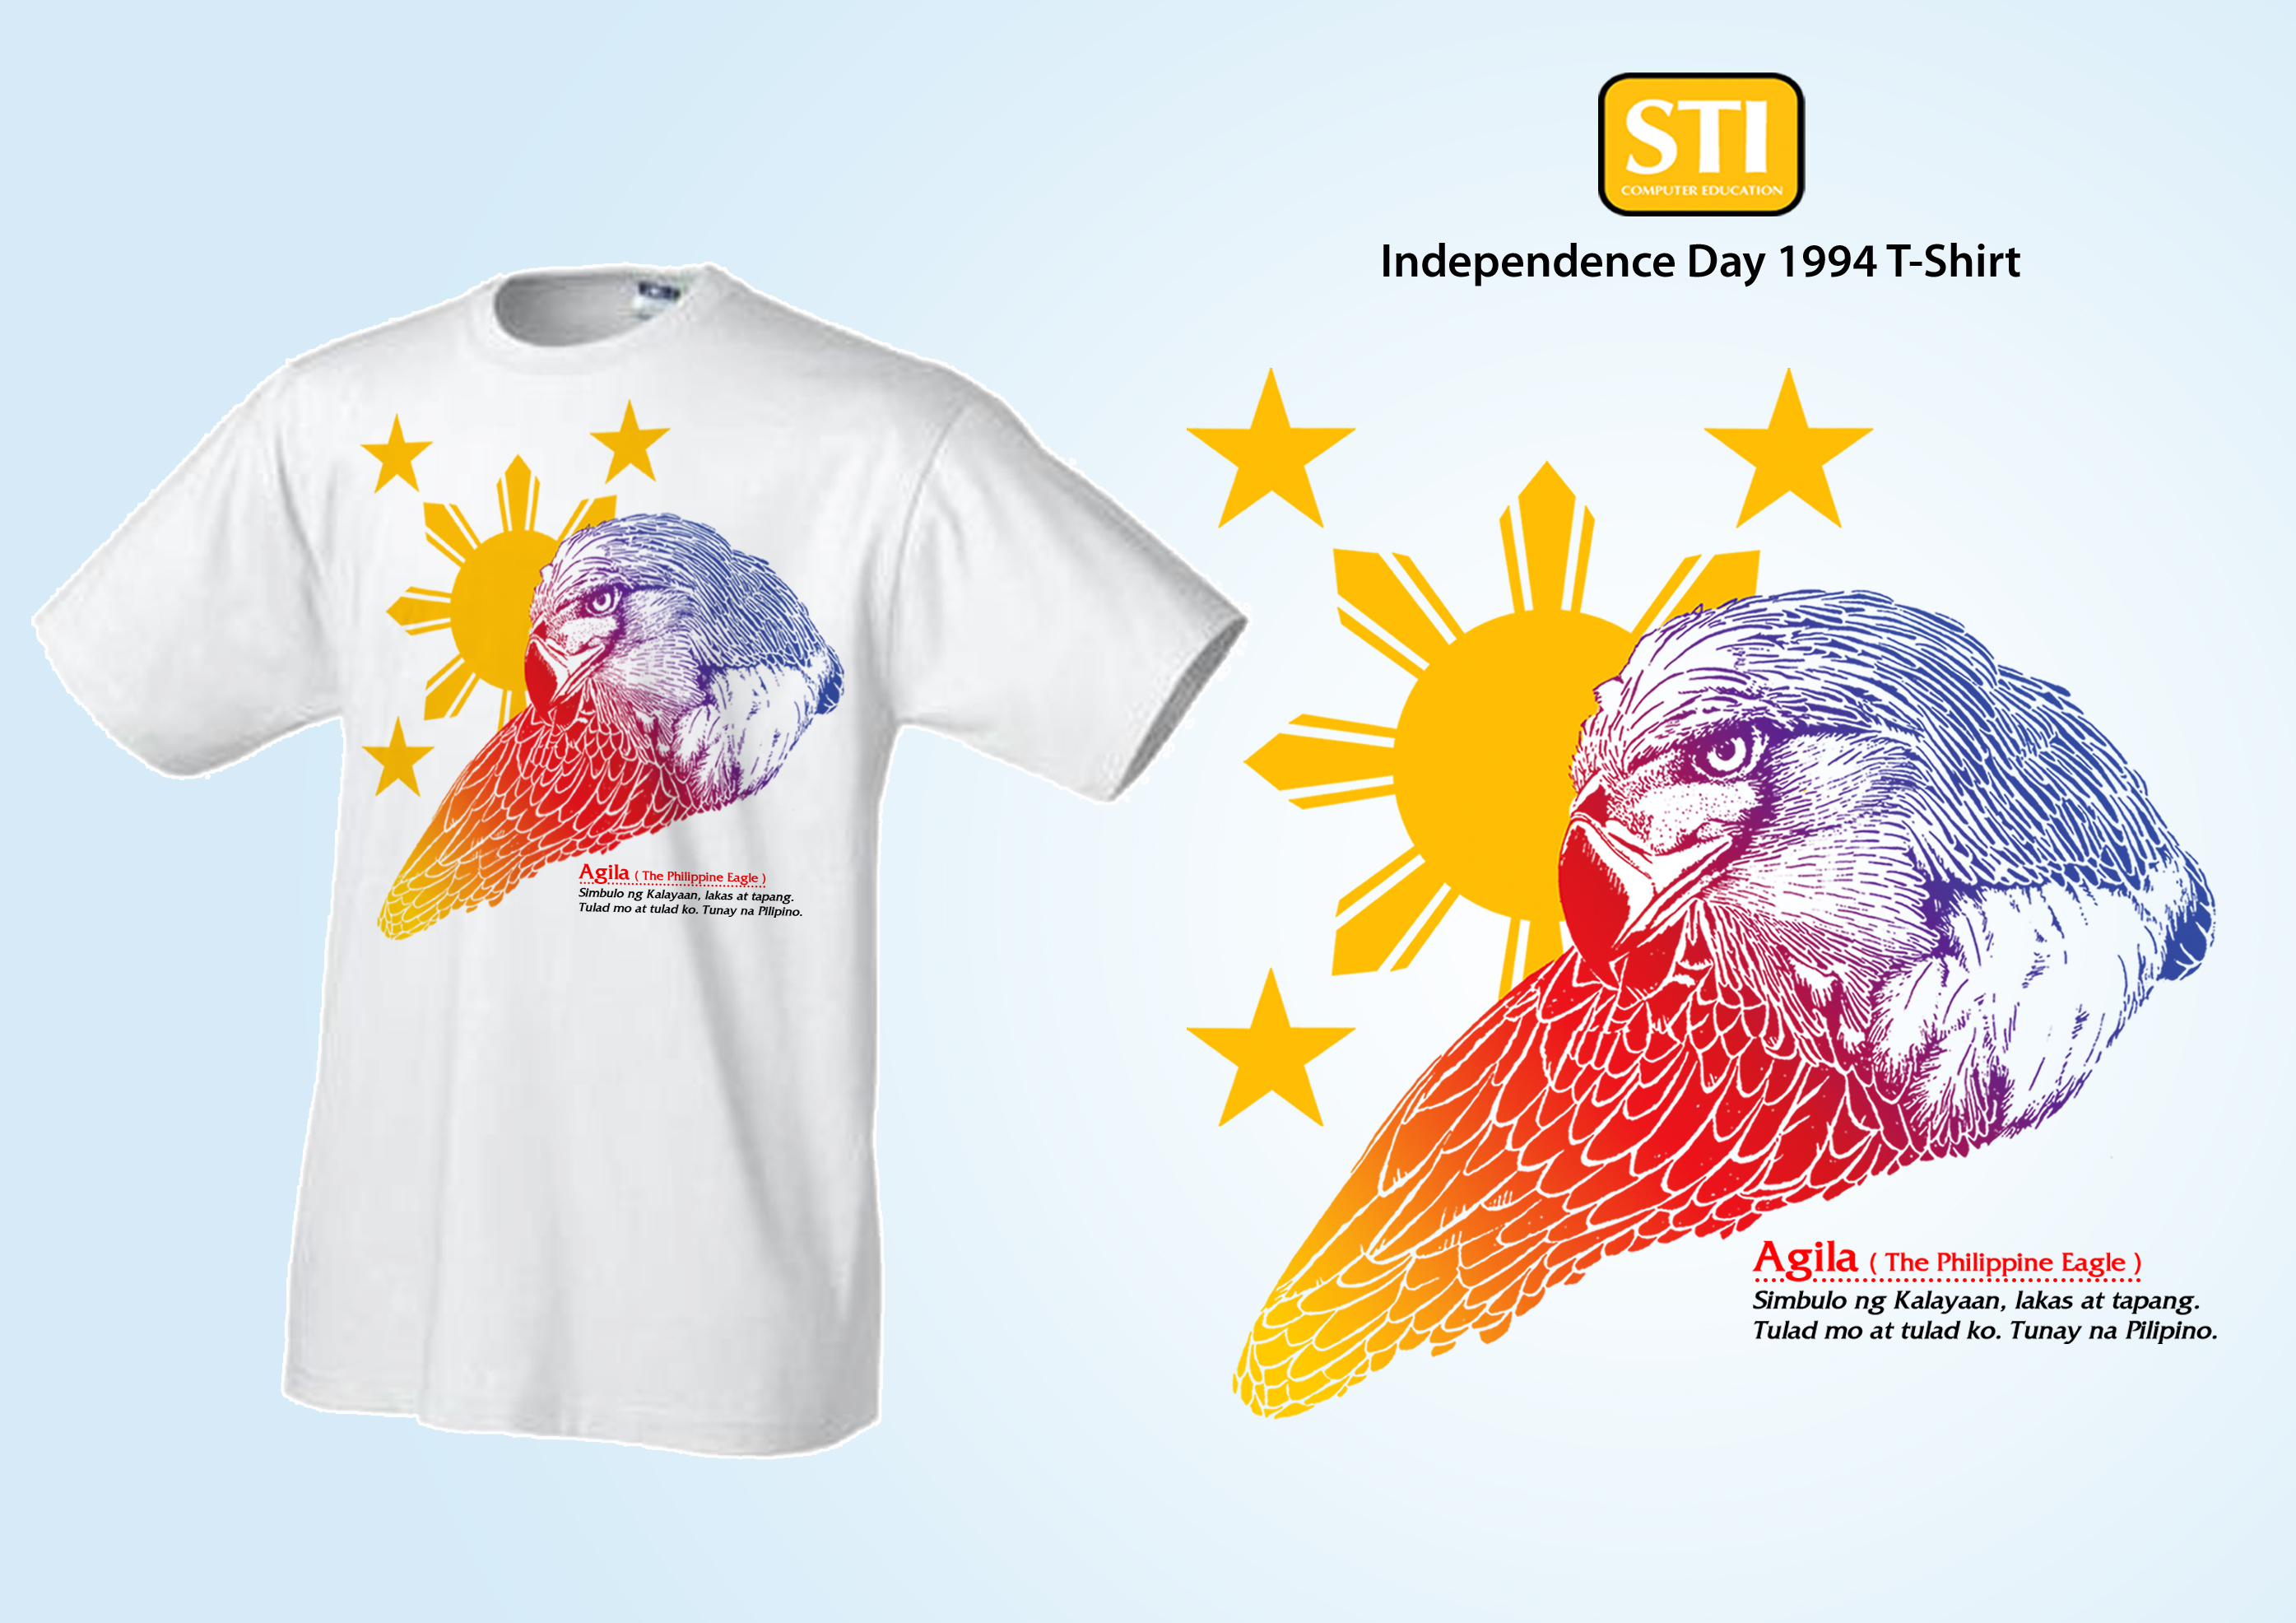 Tshirt design for alumni homecoming - Design T Shirt For Alumni Independence Day 1994 T Shirt